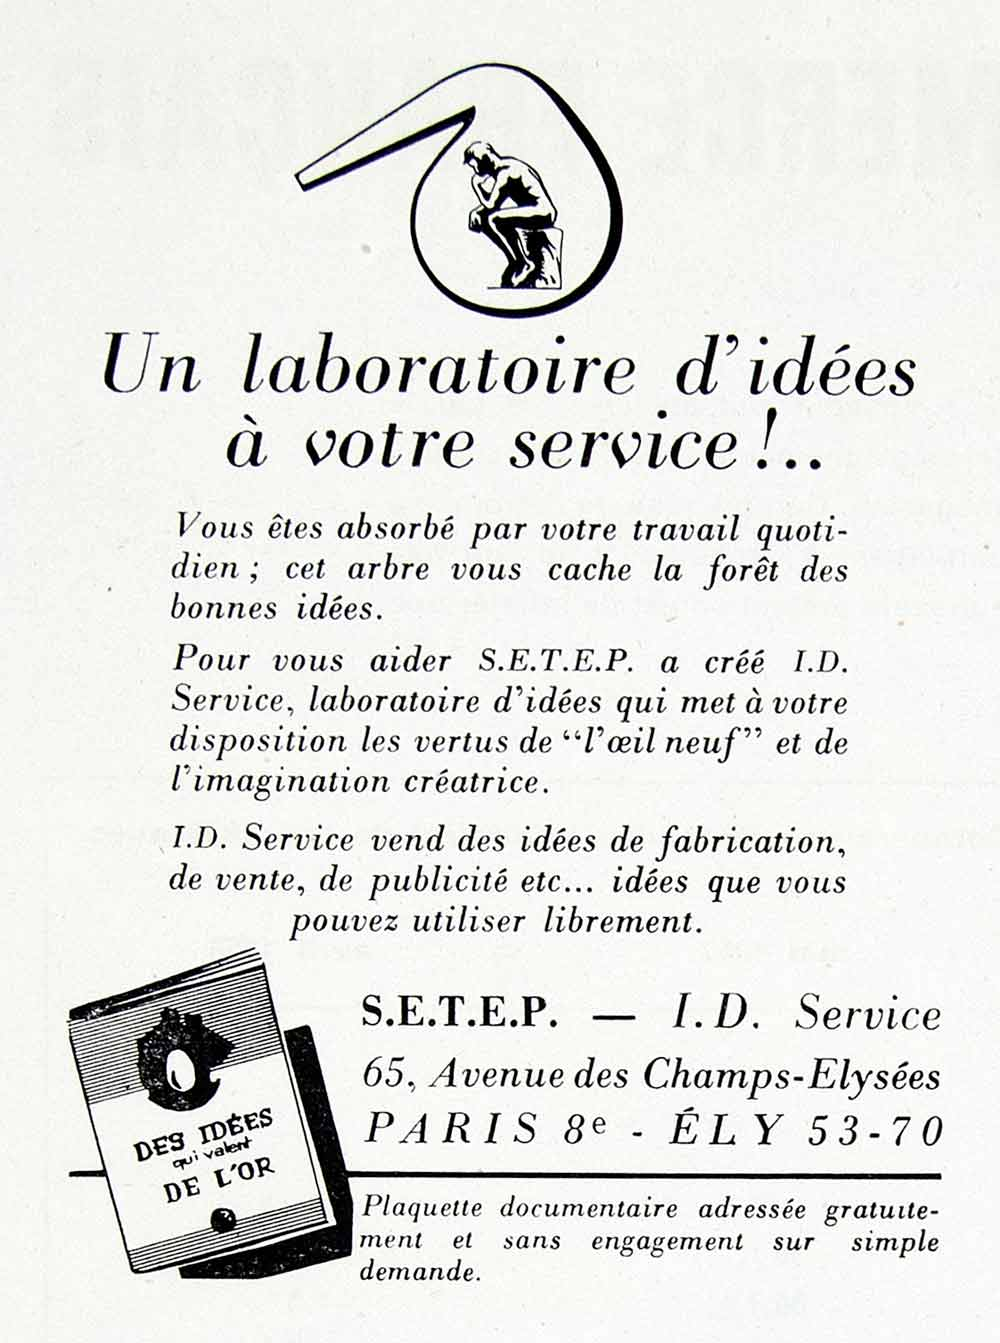 1958 Ad SETEP I.D. Service French Ideas Business Help Marketing Perspective VEN1